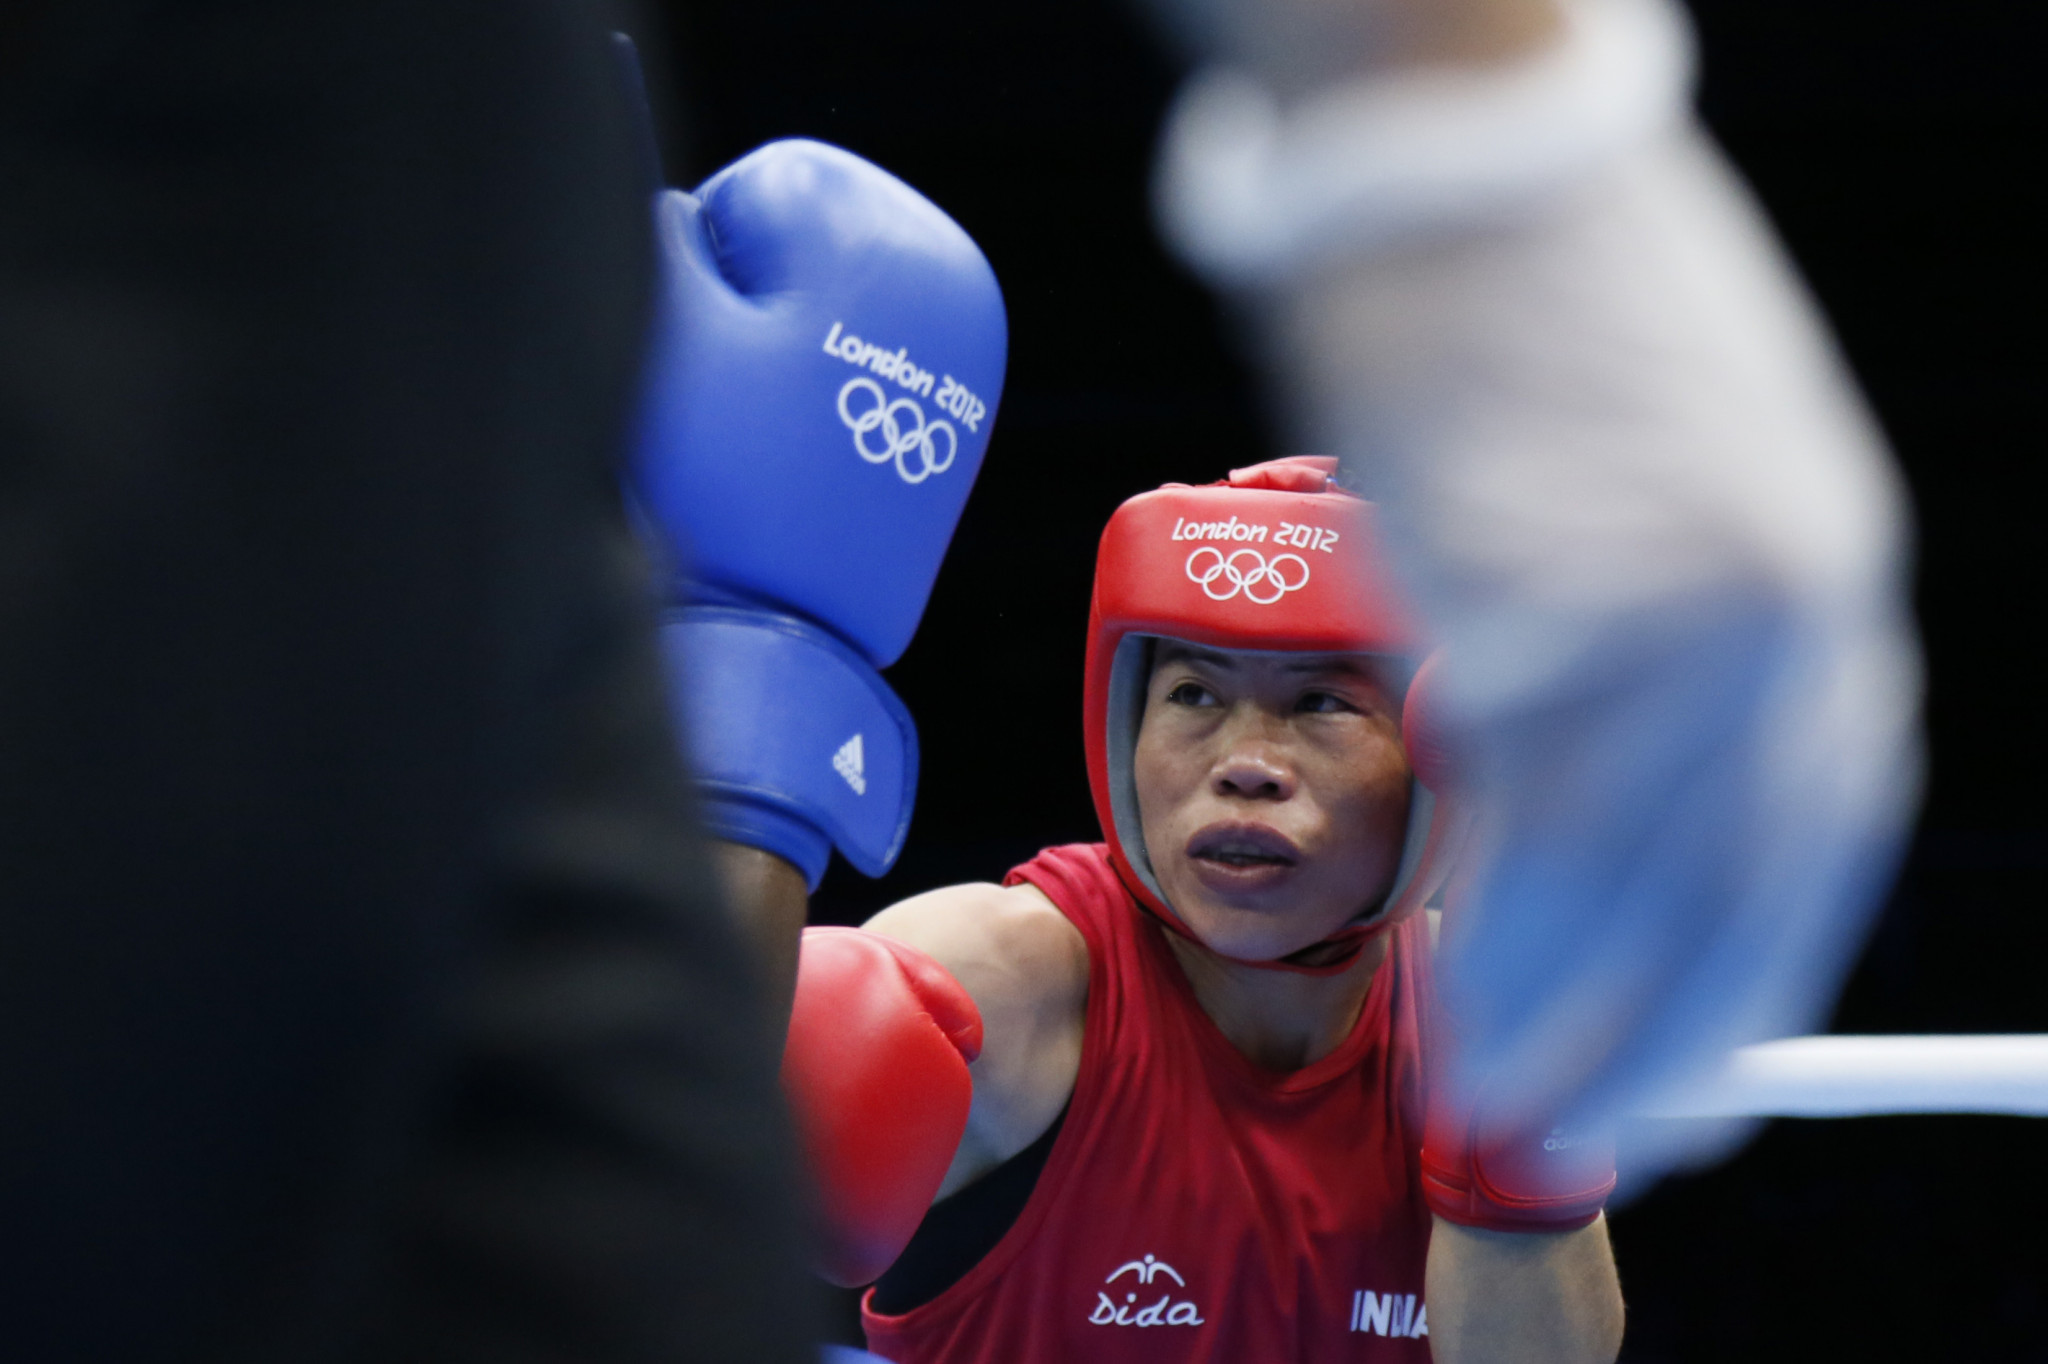 Mary Kom is a five-time world champion and London 2012 Olympic bronze medallist ©Getty Images